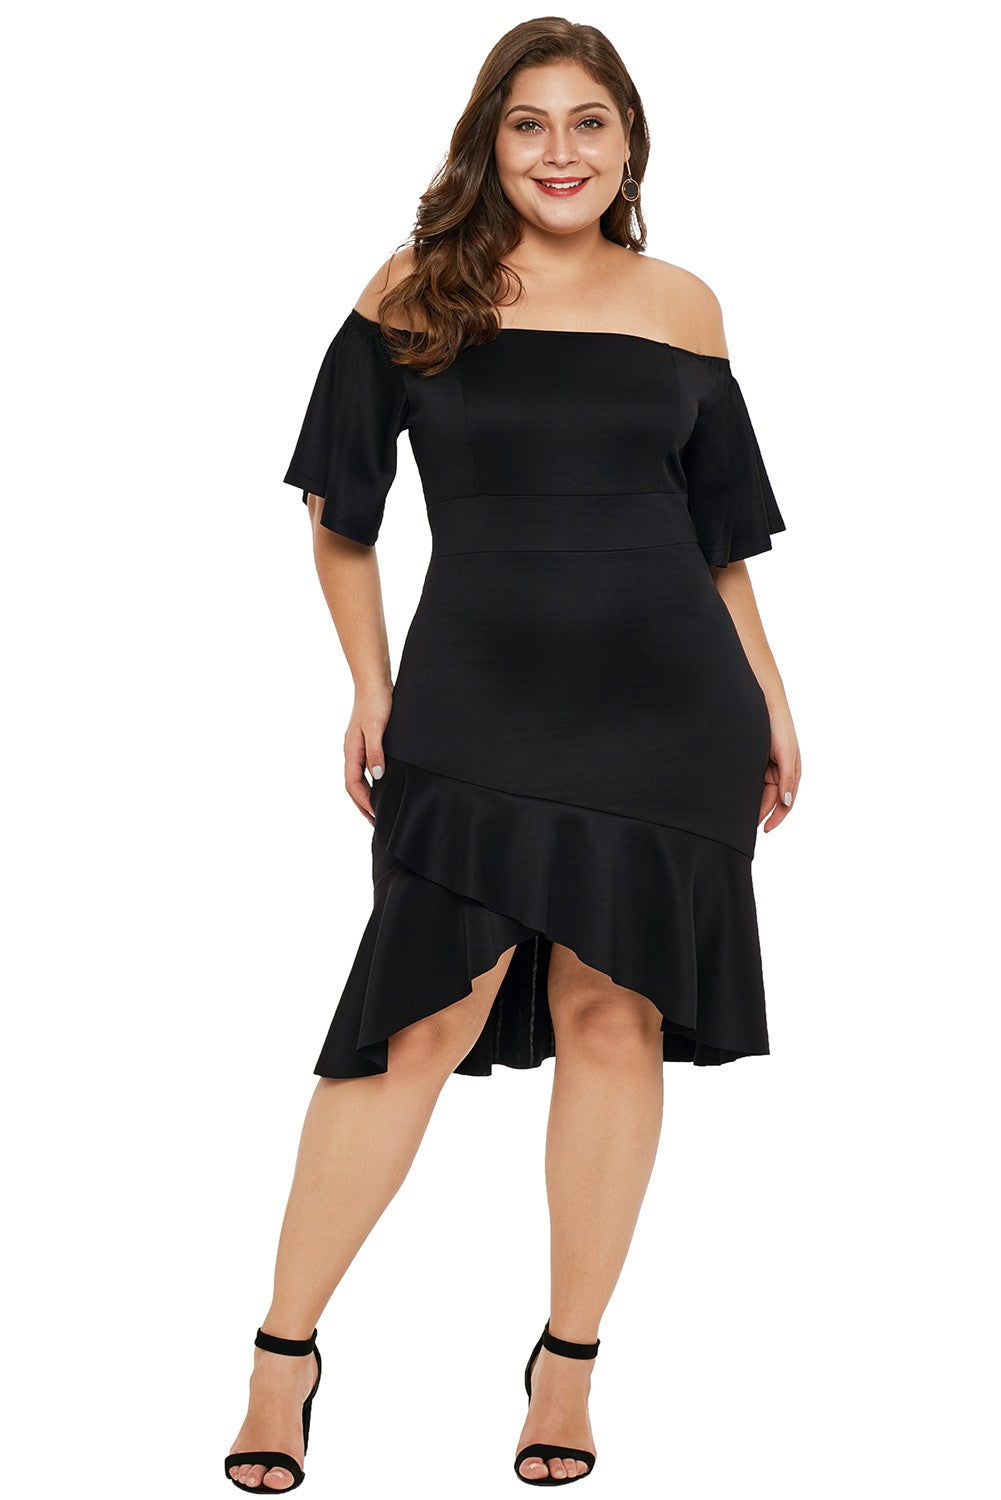 Stylish Off Shoulder Plus Size Dress with Ruffles